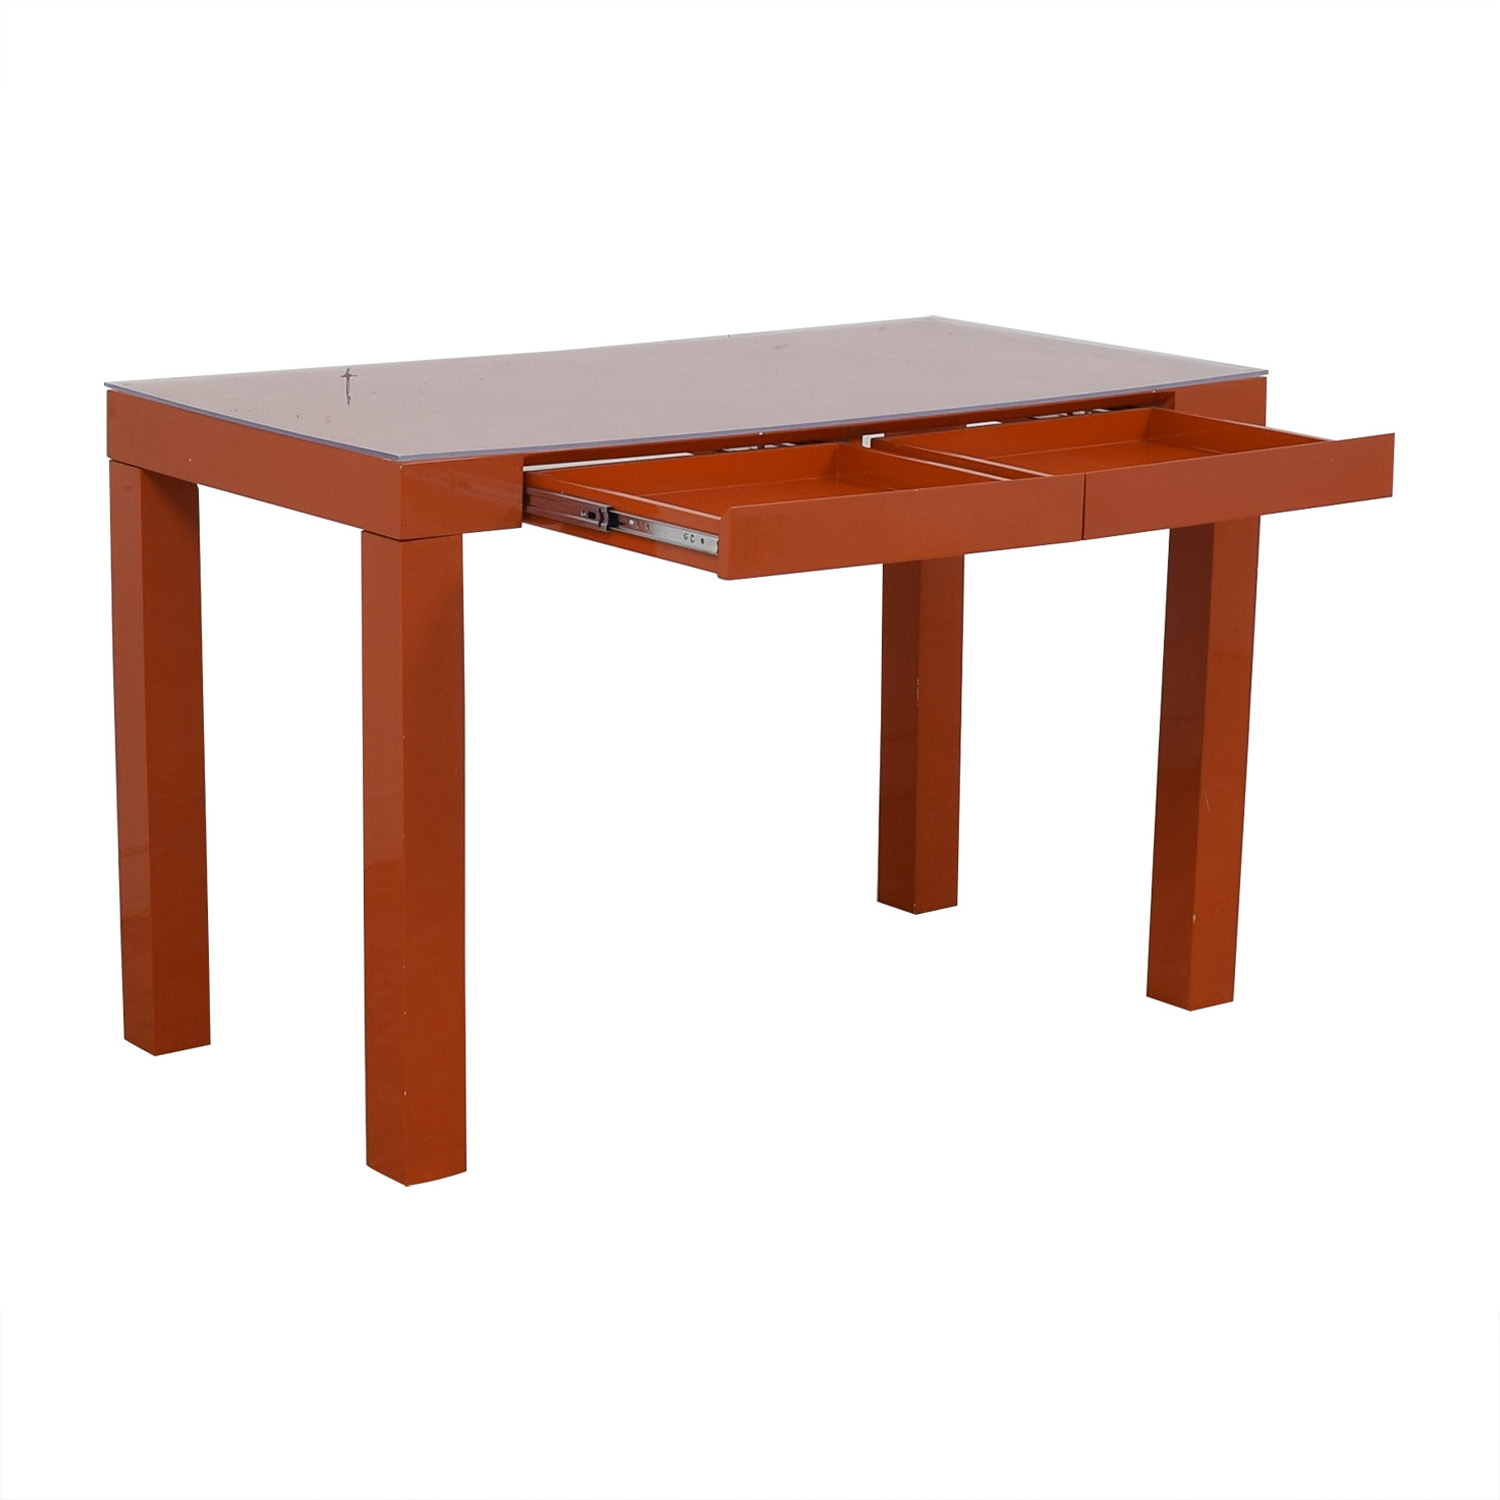 Two-Drawer Orange Parsons Style Desk dimensions